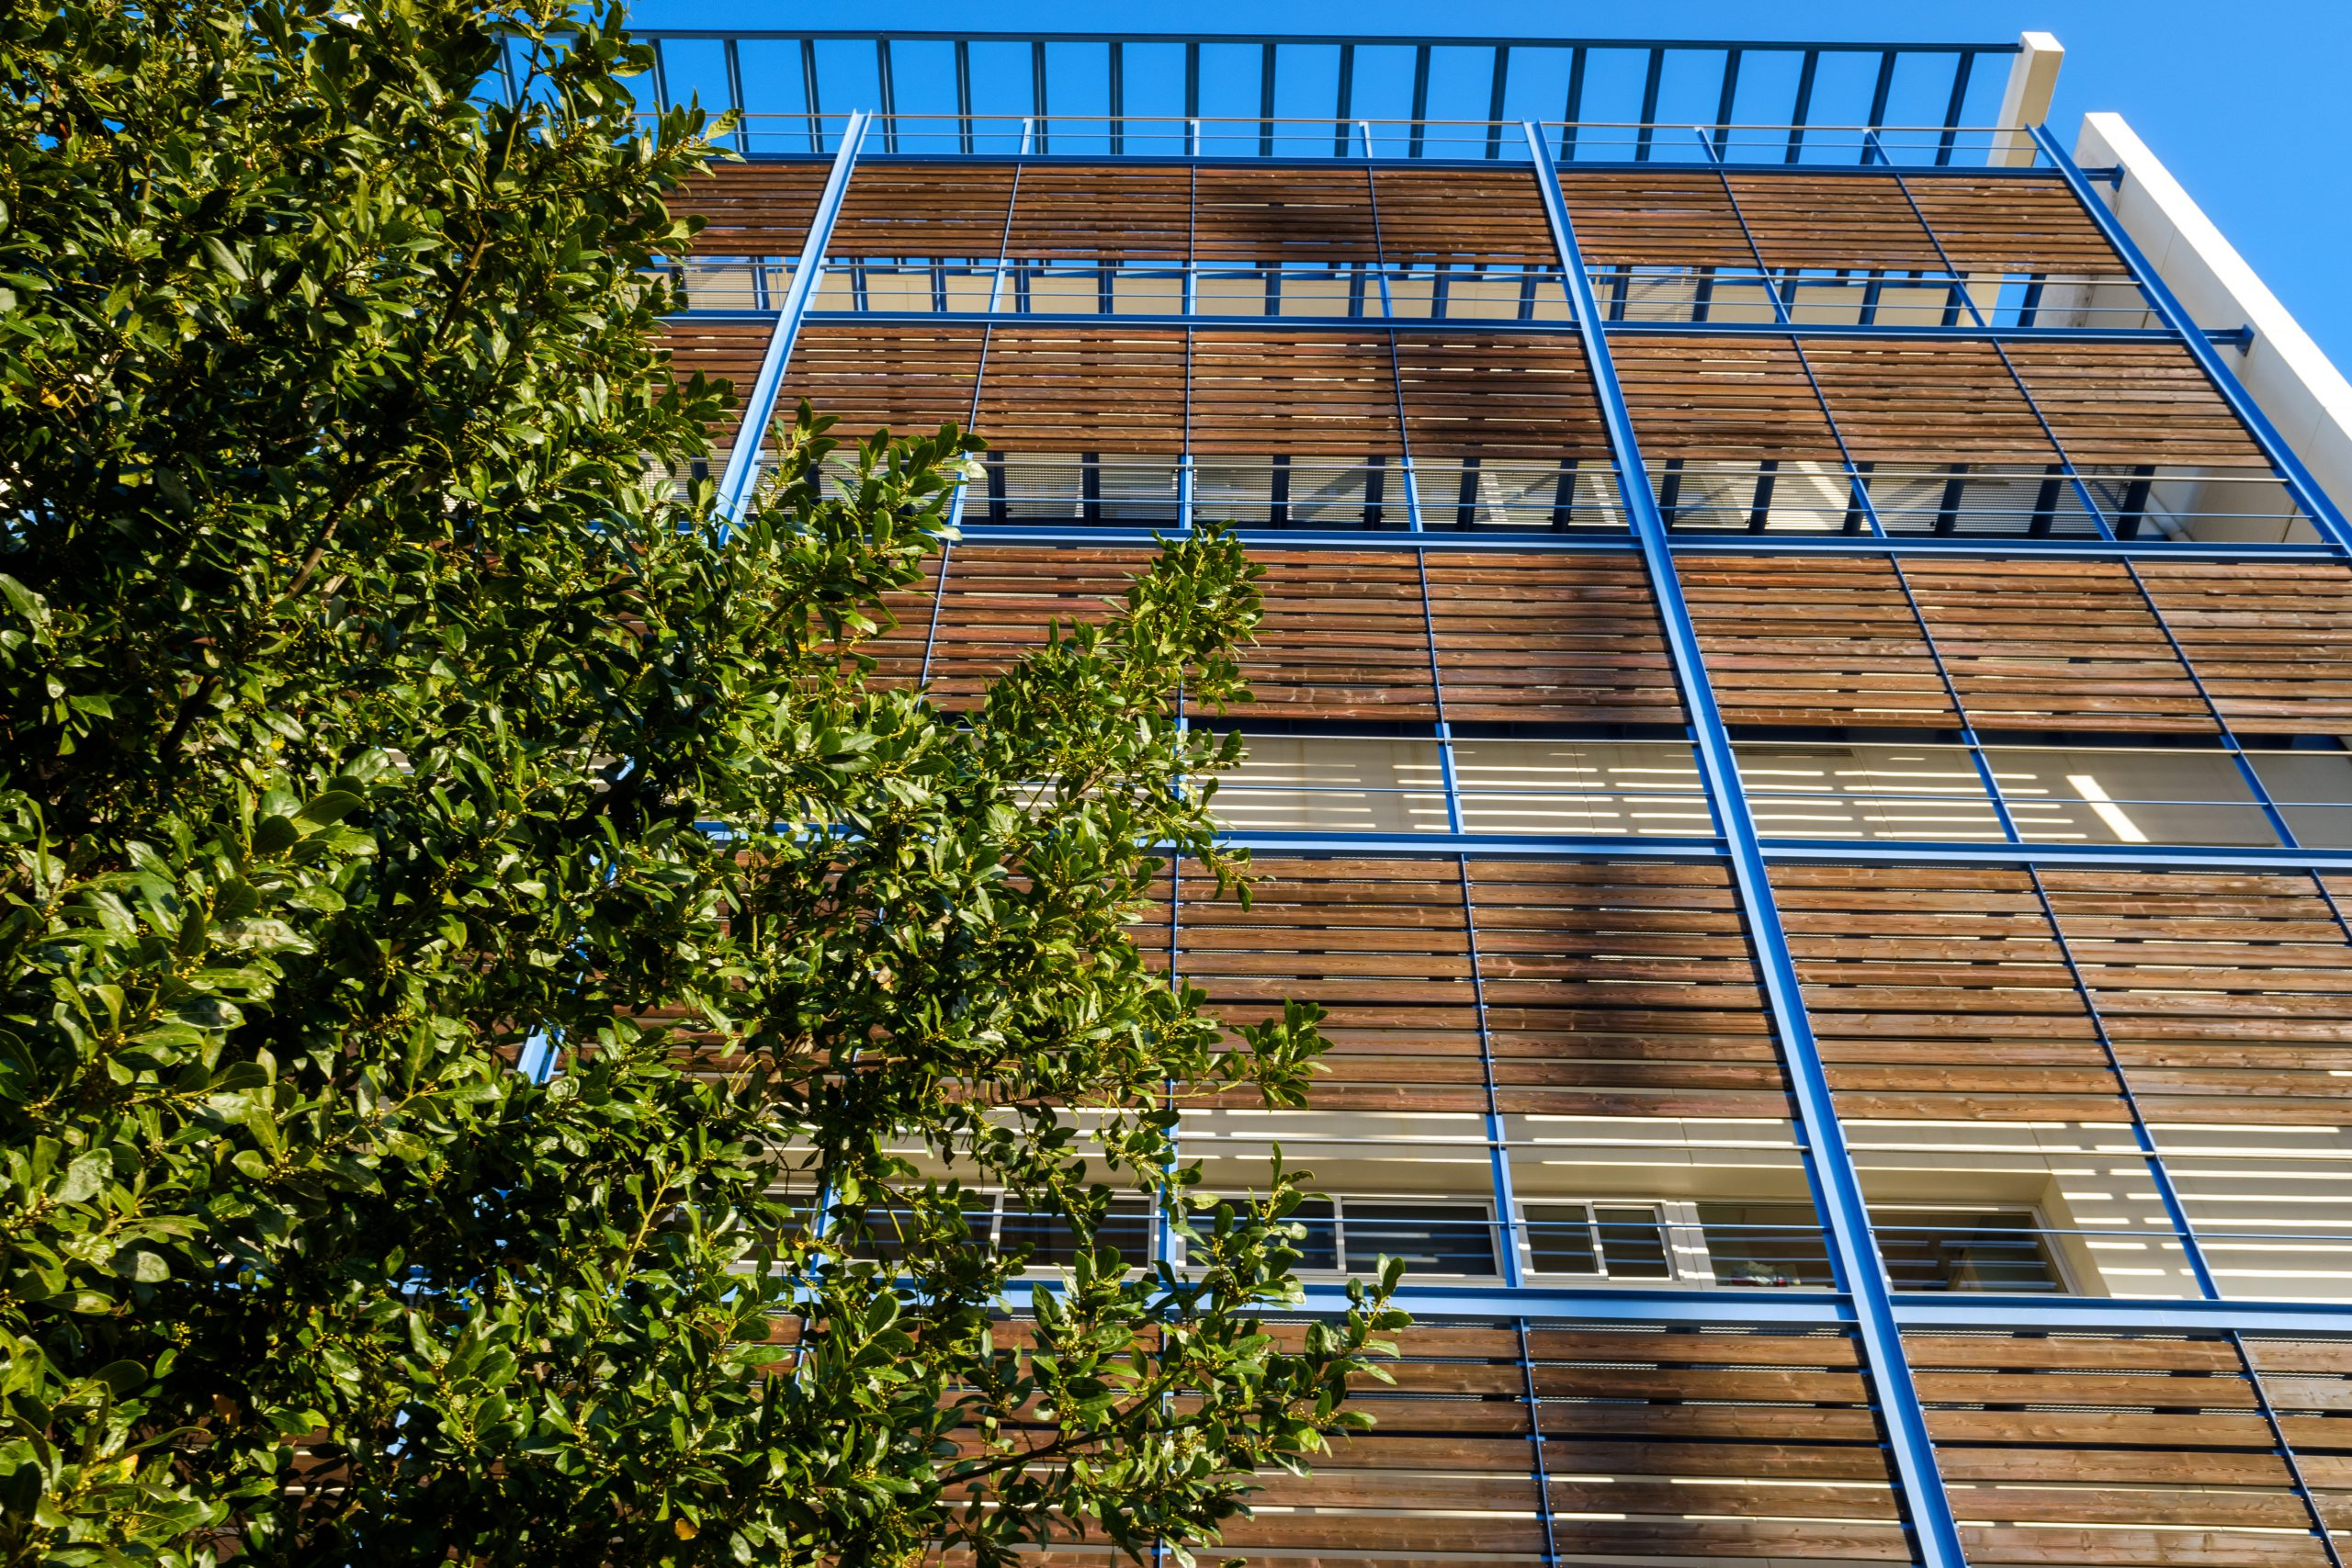 The 7 principles of sustainable construction